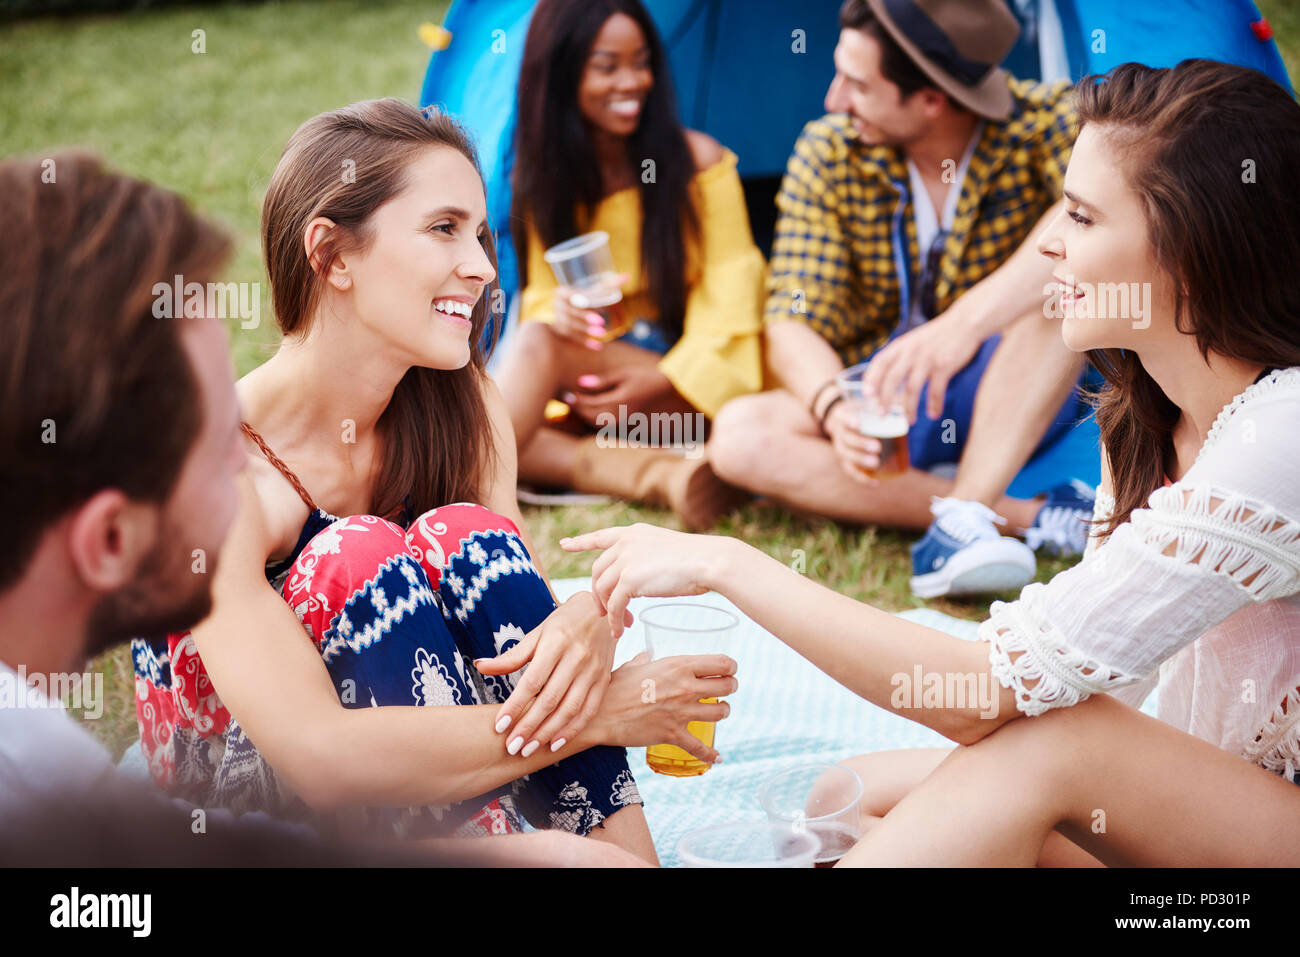 Friends sitting and enjoying music festival - Stock Image